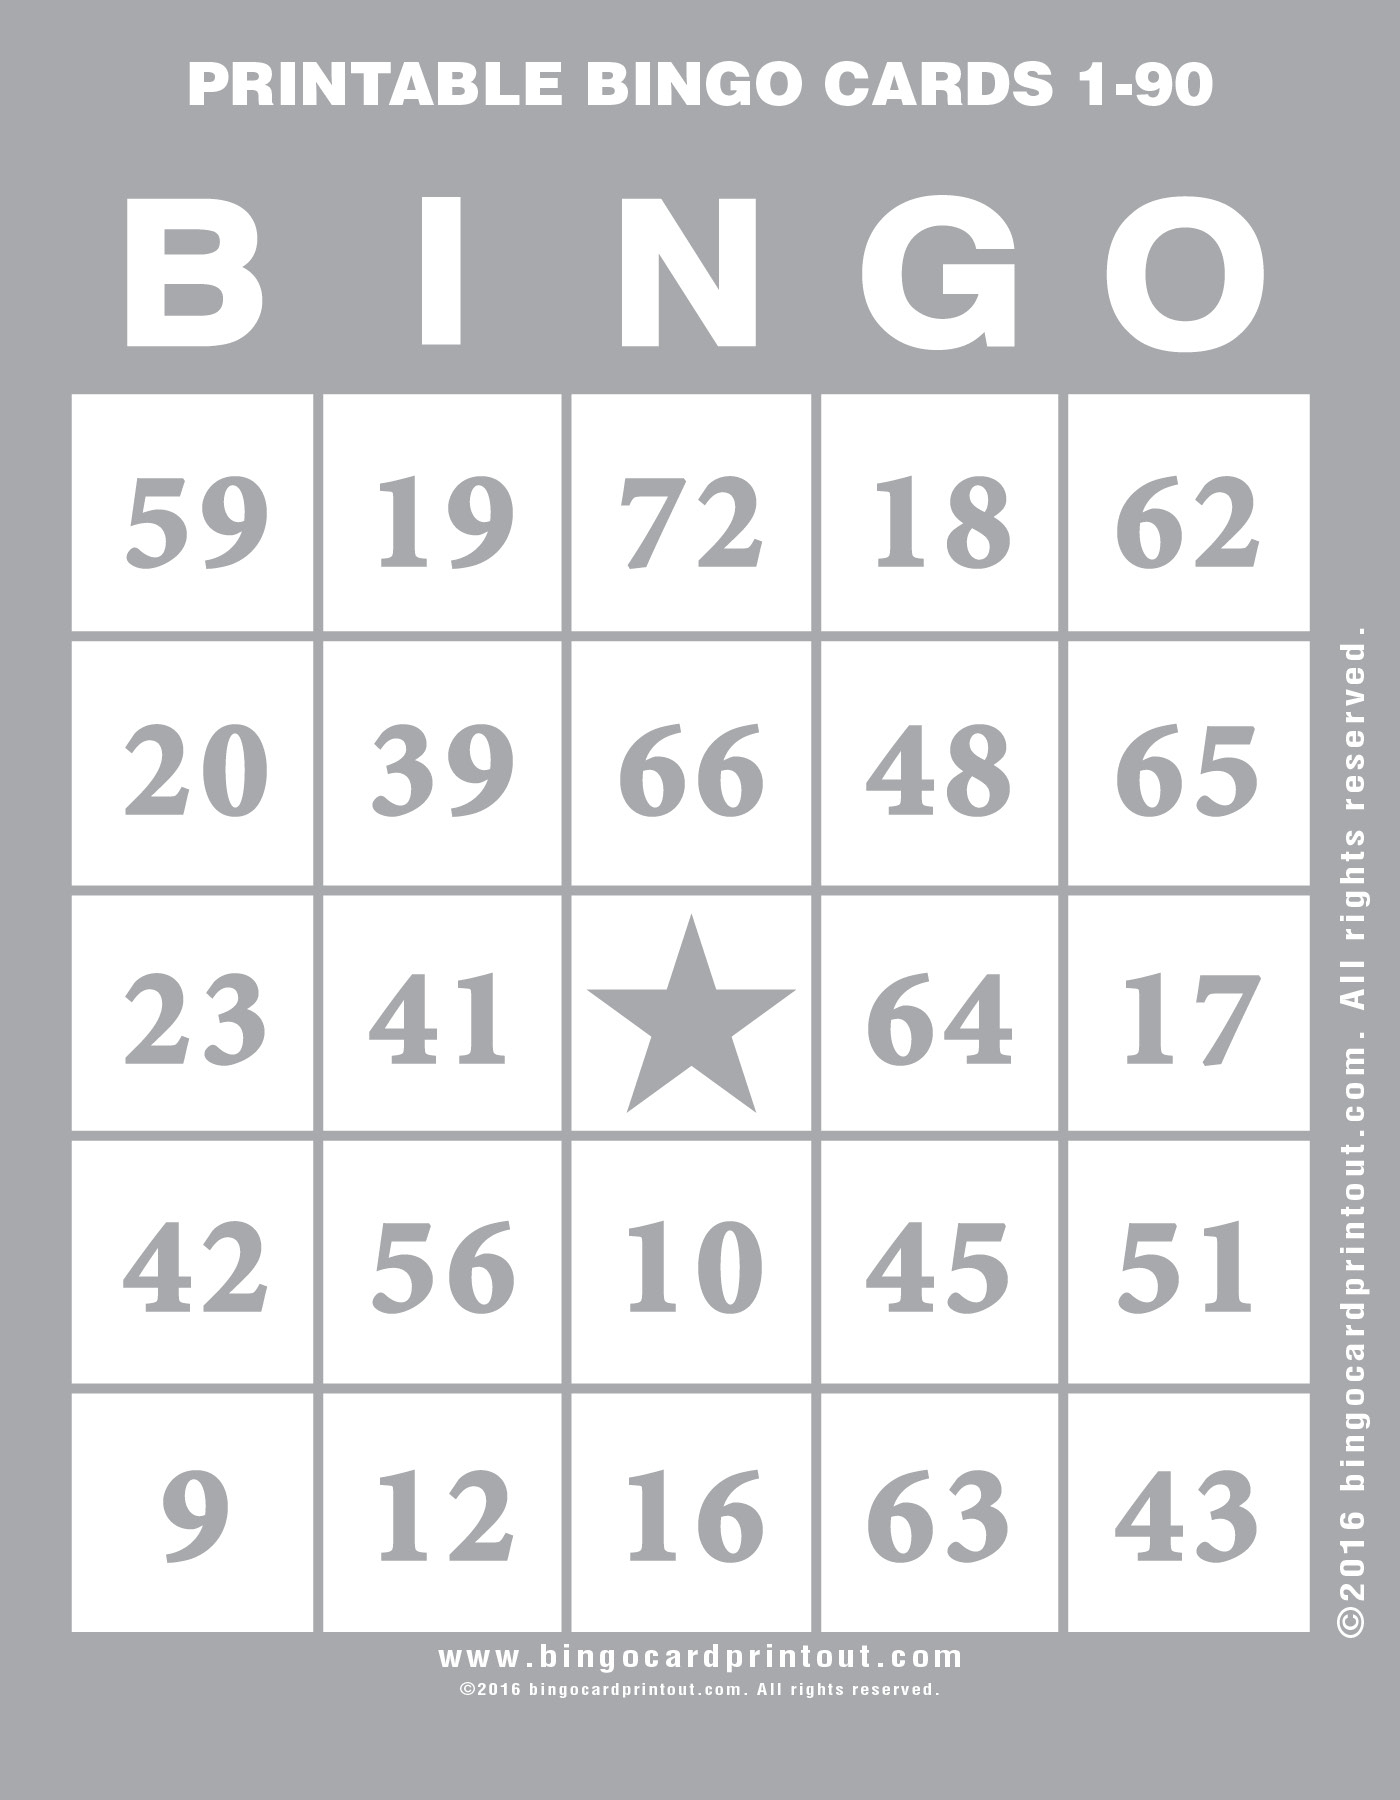 Printable Bingo Cards 1-90 - Bingocardprintout - Free Printable Number Bingo Cards 1 20